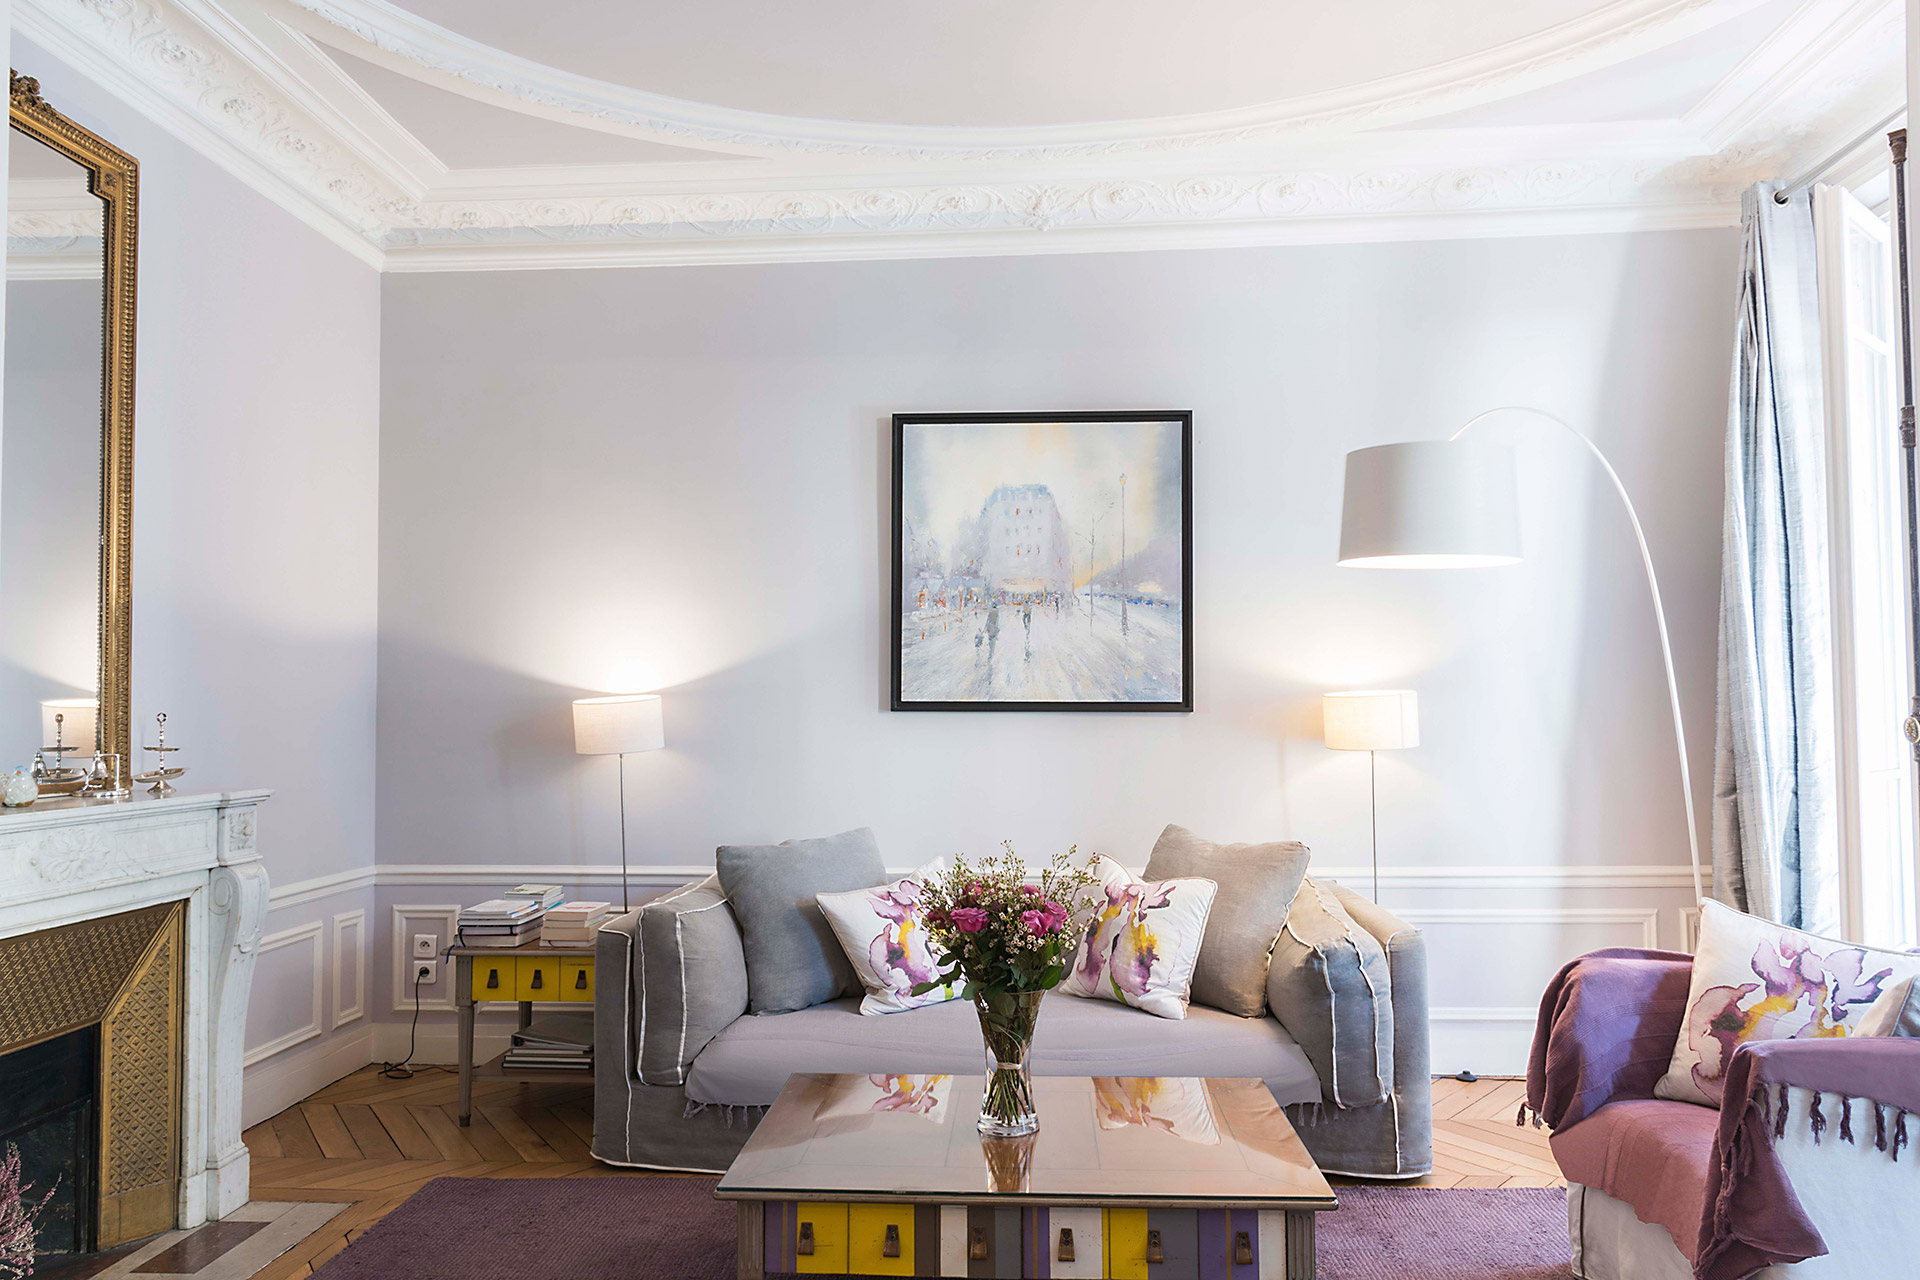 Stunning living room in violet and grey tone in the Maubert vacation rental offered by Paris Perfect